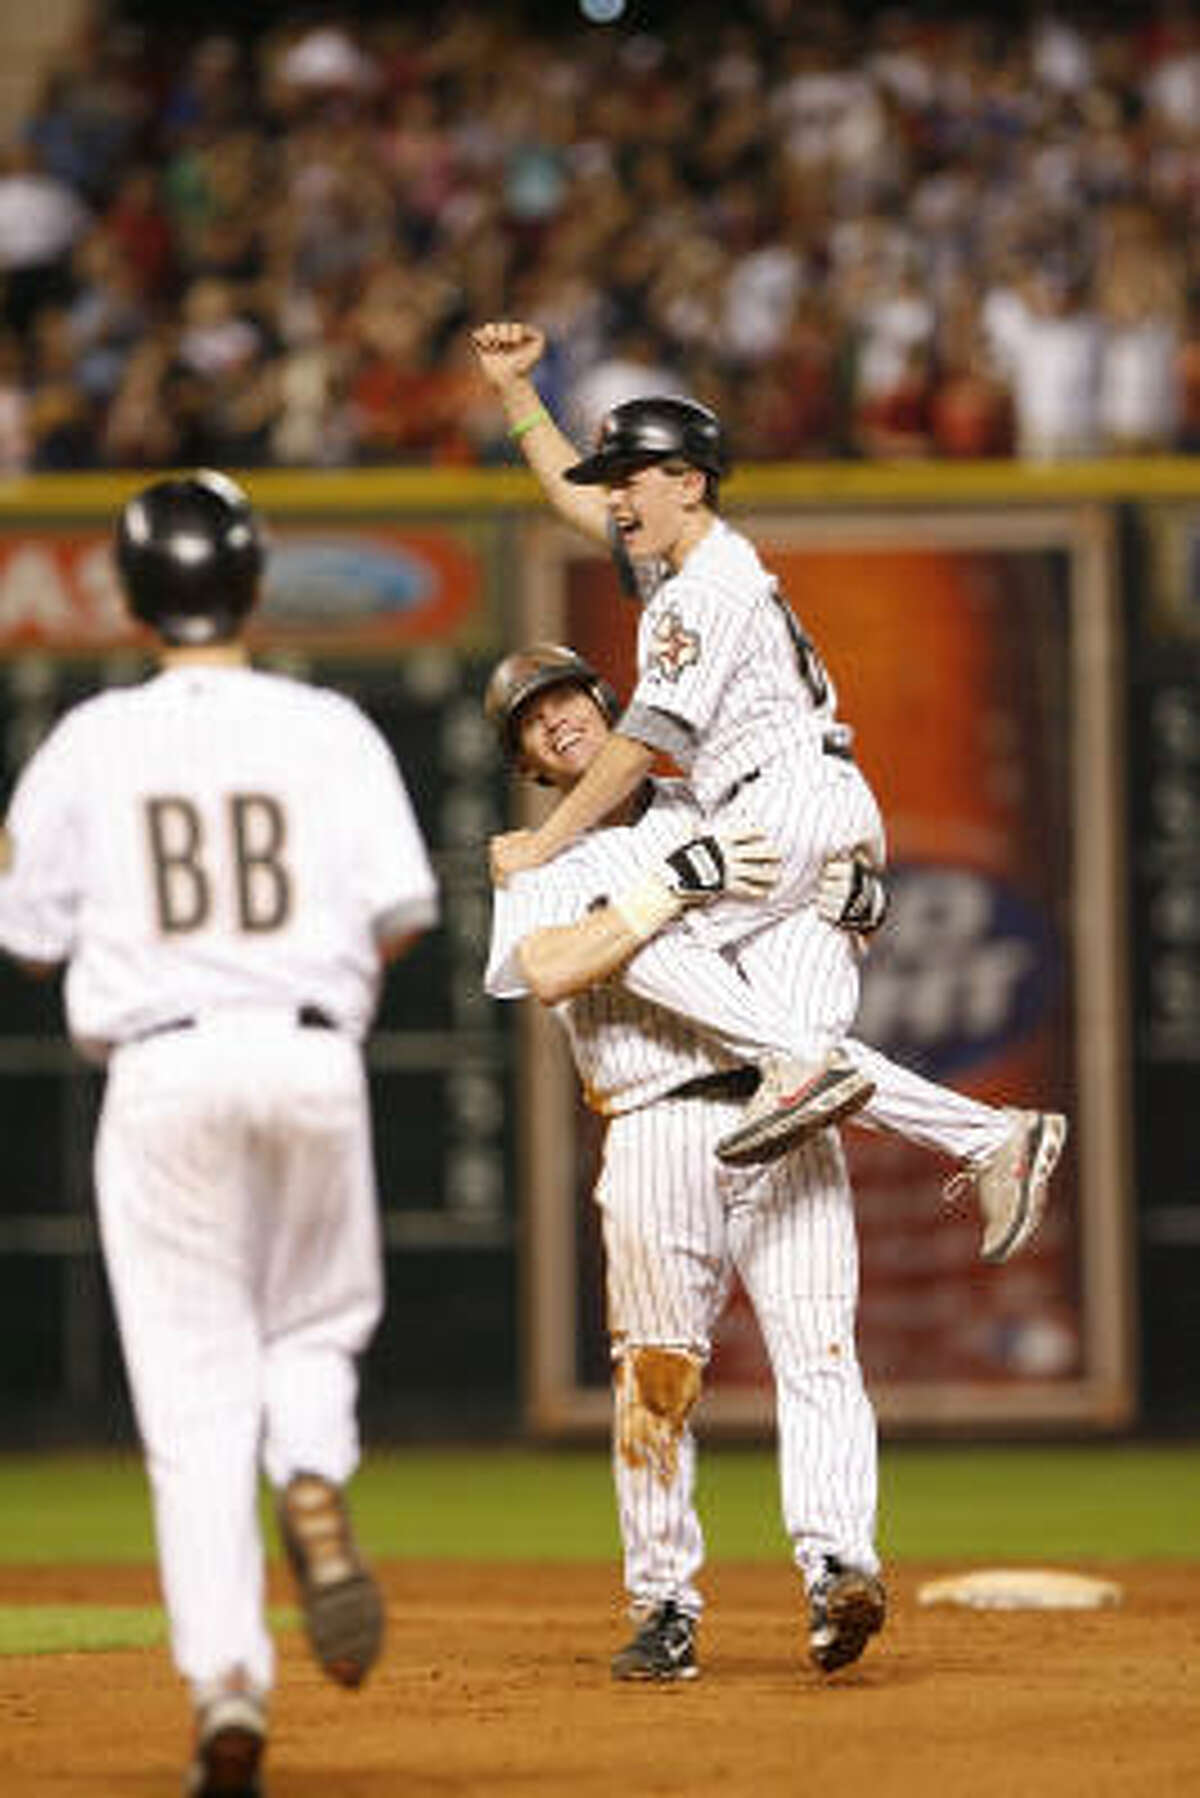 2. June 28, 2007 - Craig Biggio records his 3,000th career hit in the seventh inning en route to a five-hit night, including an infield single in the 11th inning that paves the way for Carlos Lee's walk-off grand slam homer in an 8-5 Astros victory.